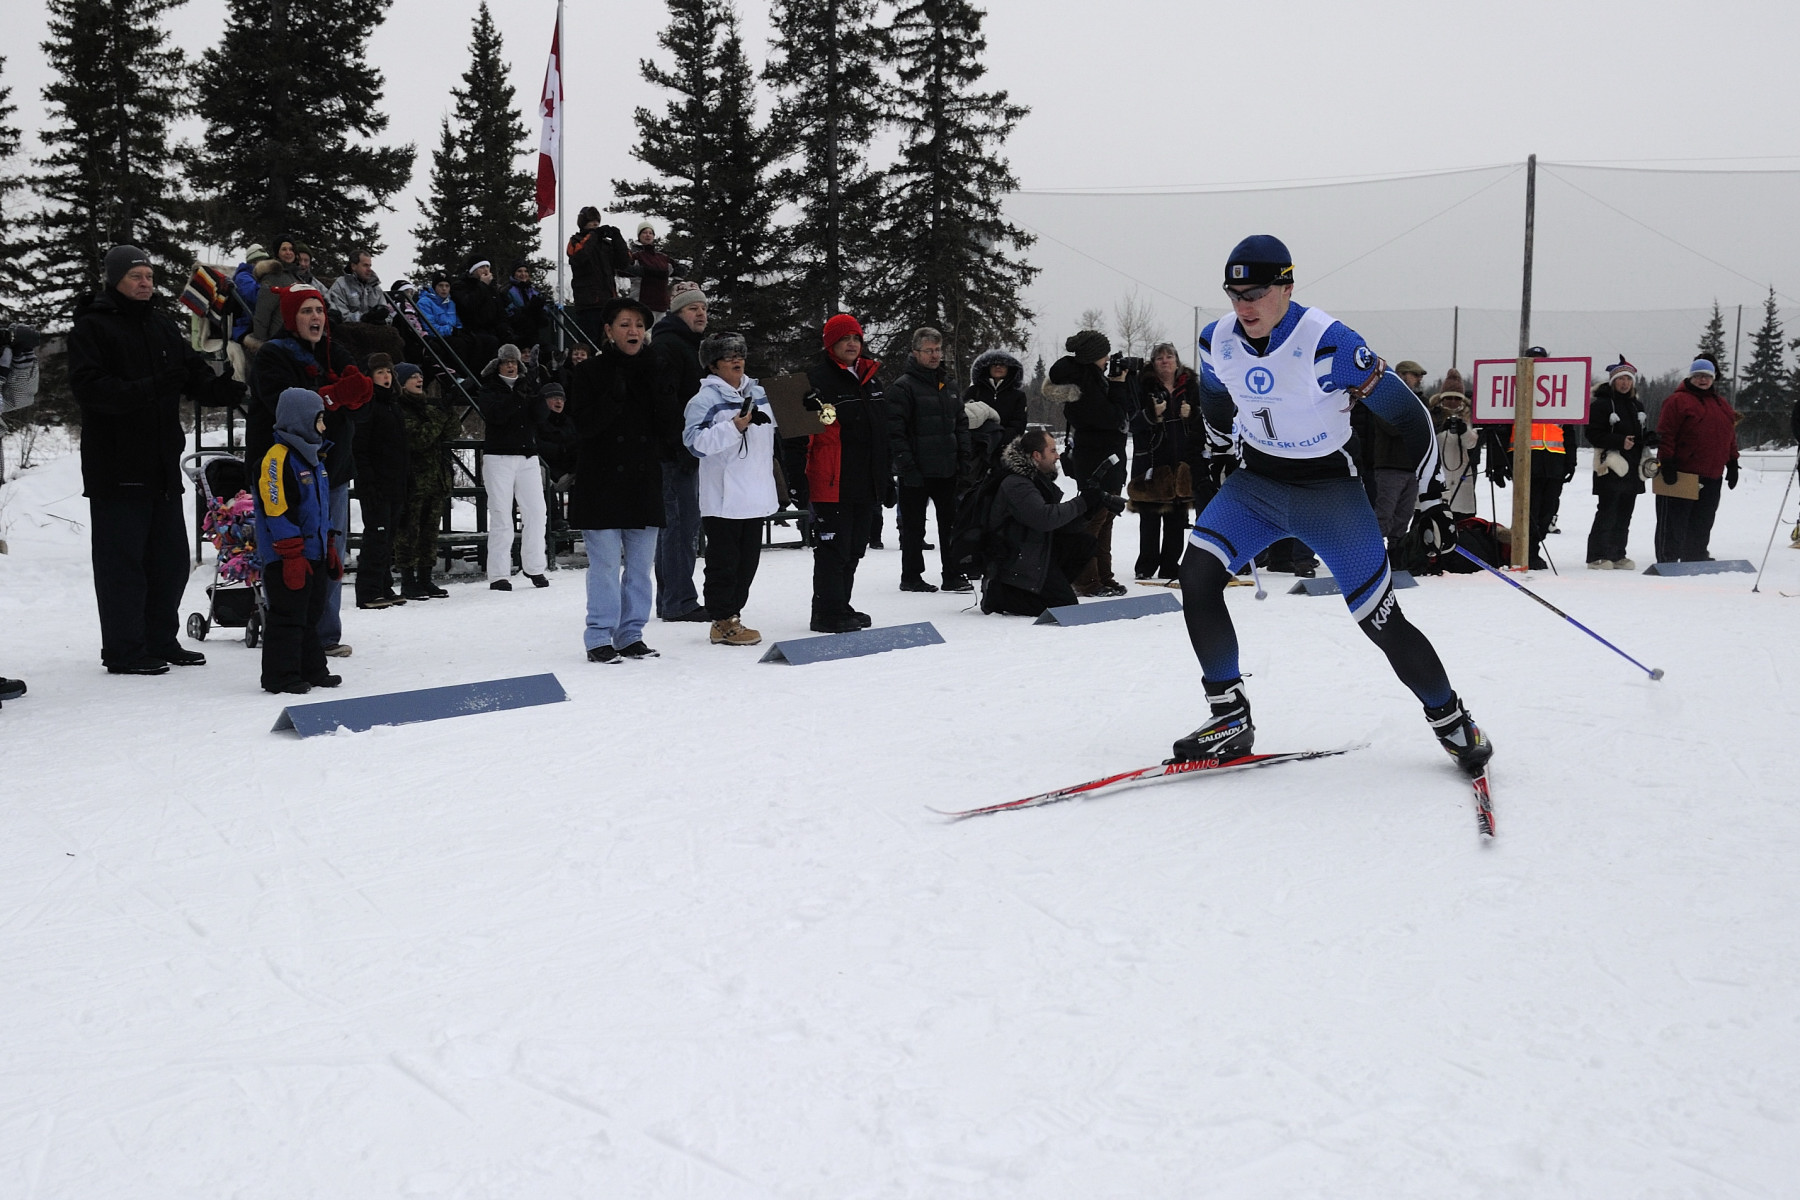 Spectators at the Hay River Ski Club cheered on athletes as they tried out for the biathlon team.